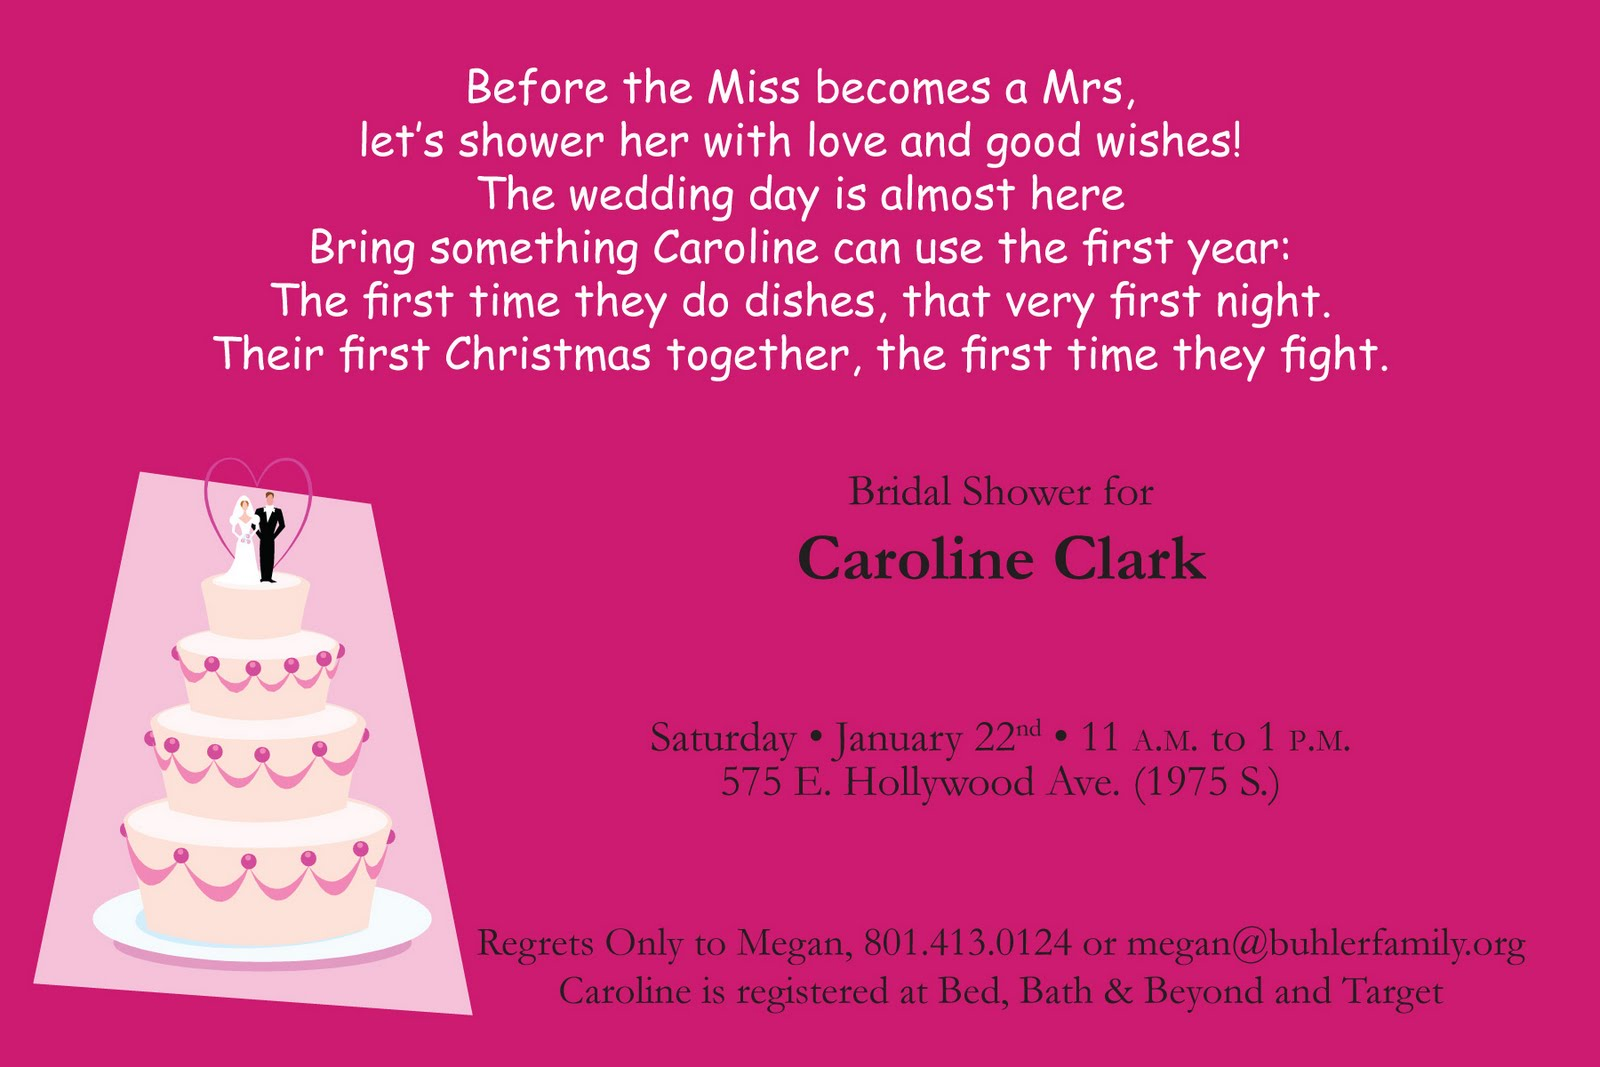 Bridal shower invitations bridal shower invitation poems and quotes poem online for the invitation so i came up with this rather filmwisefo Images